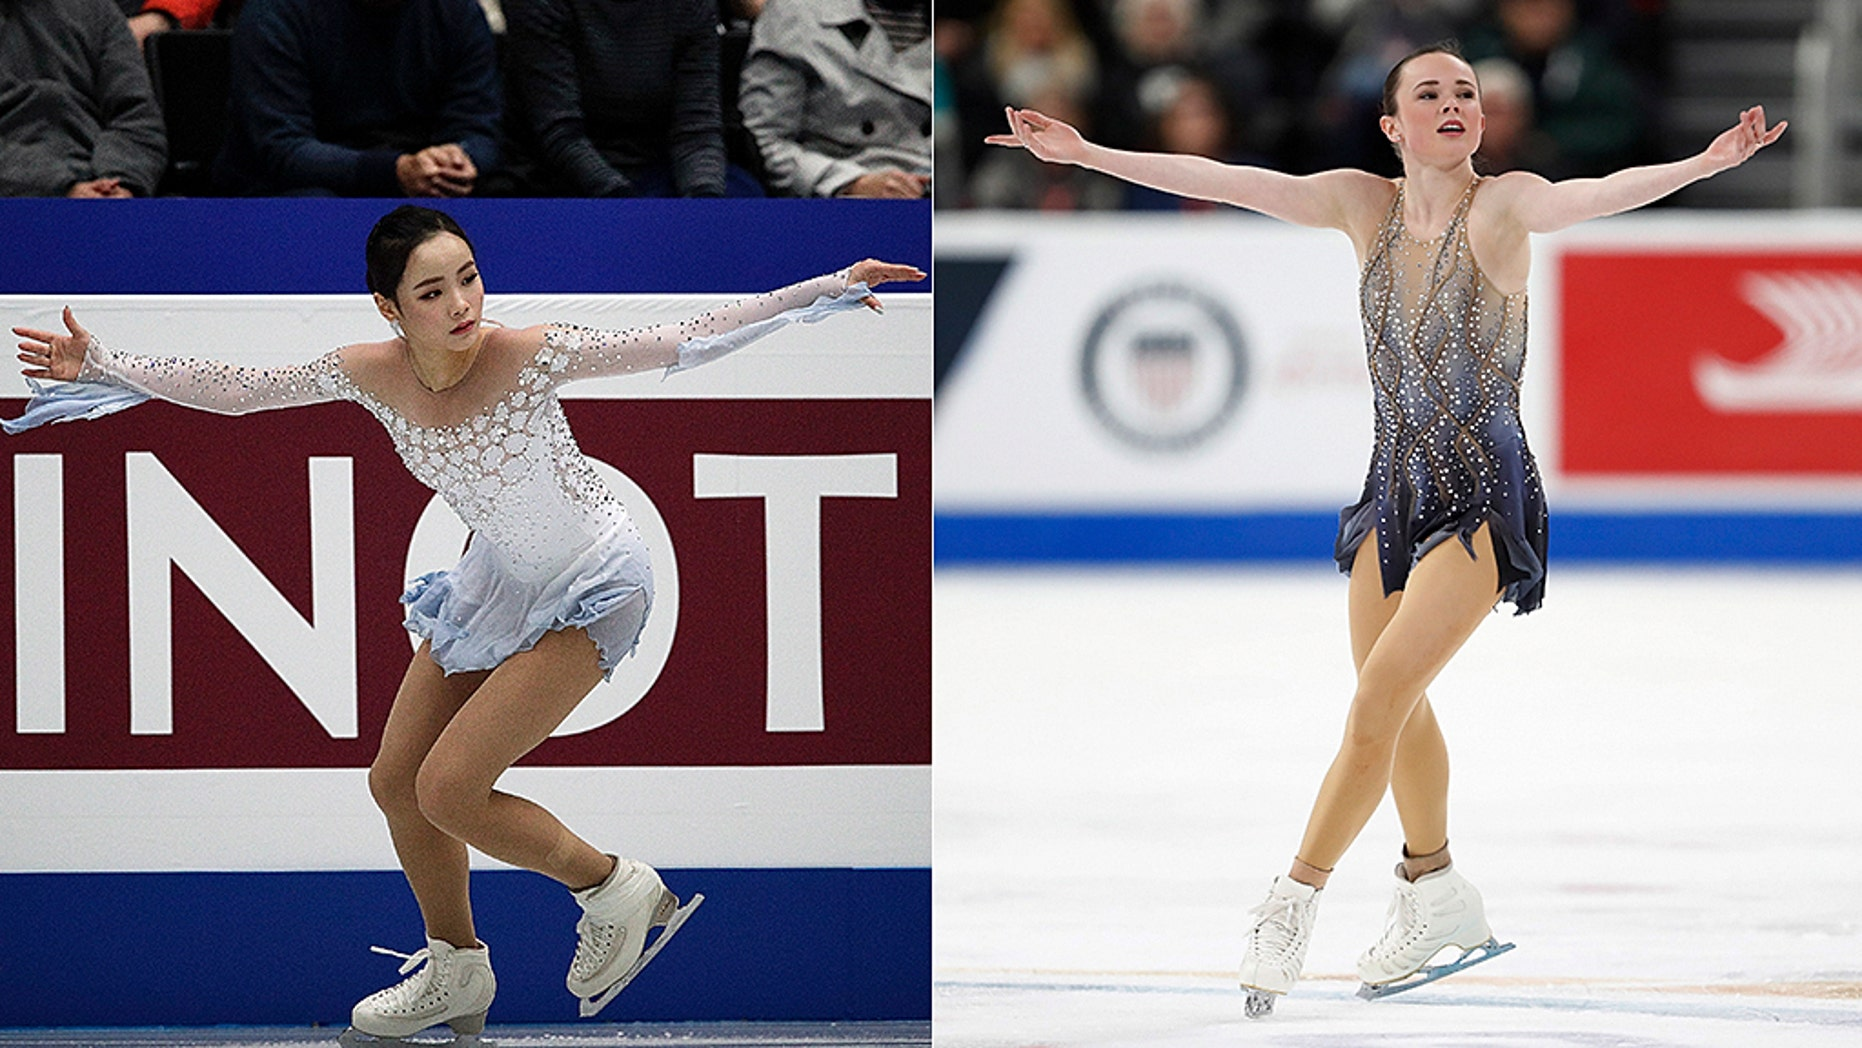 Mariah Bell, 22, an American figure skater, [right] is accused of bullying and purposely cutting opponent South Korean skater Lim Eun-soo [left] during warm-ups at the World Figure Skating Championships in Saitama, Japan, on Wednesday, March 20, 2019.